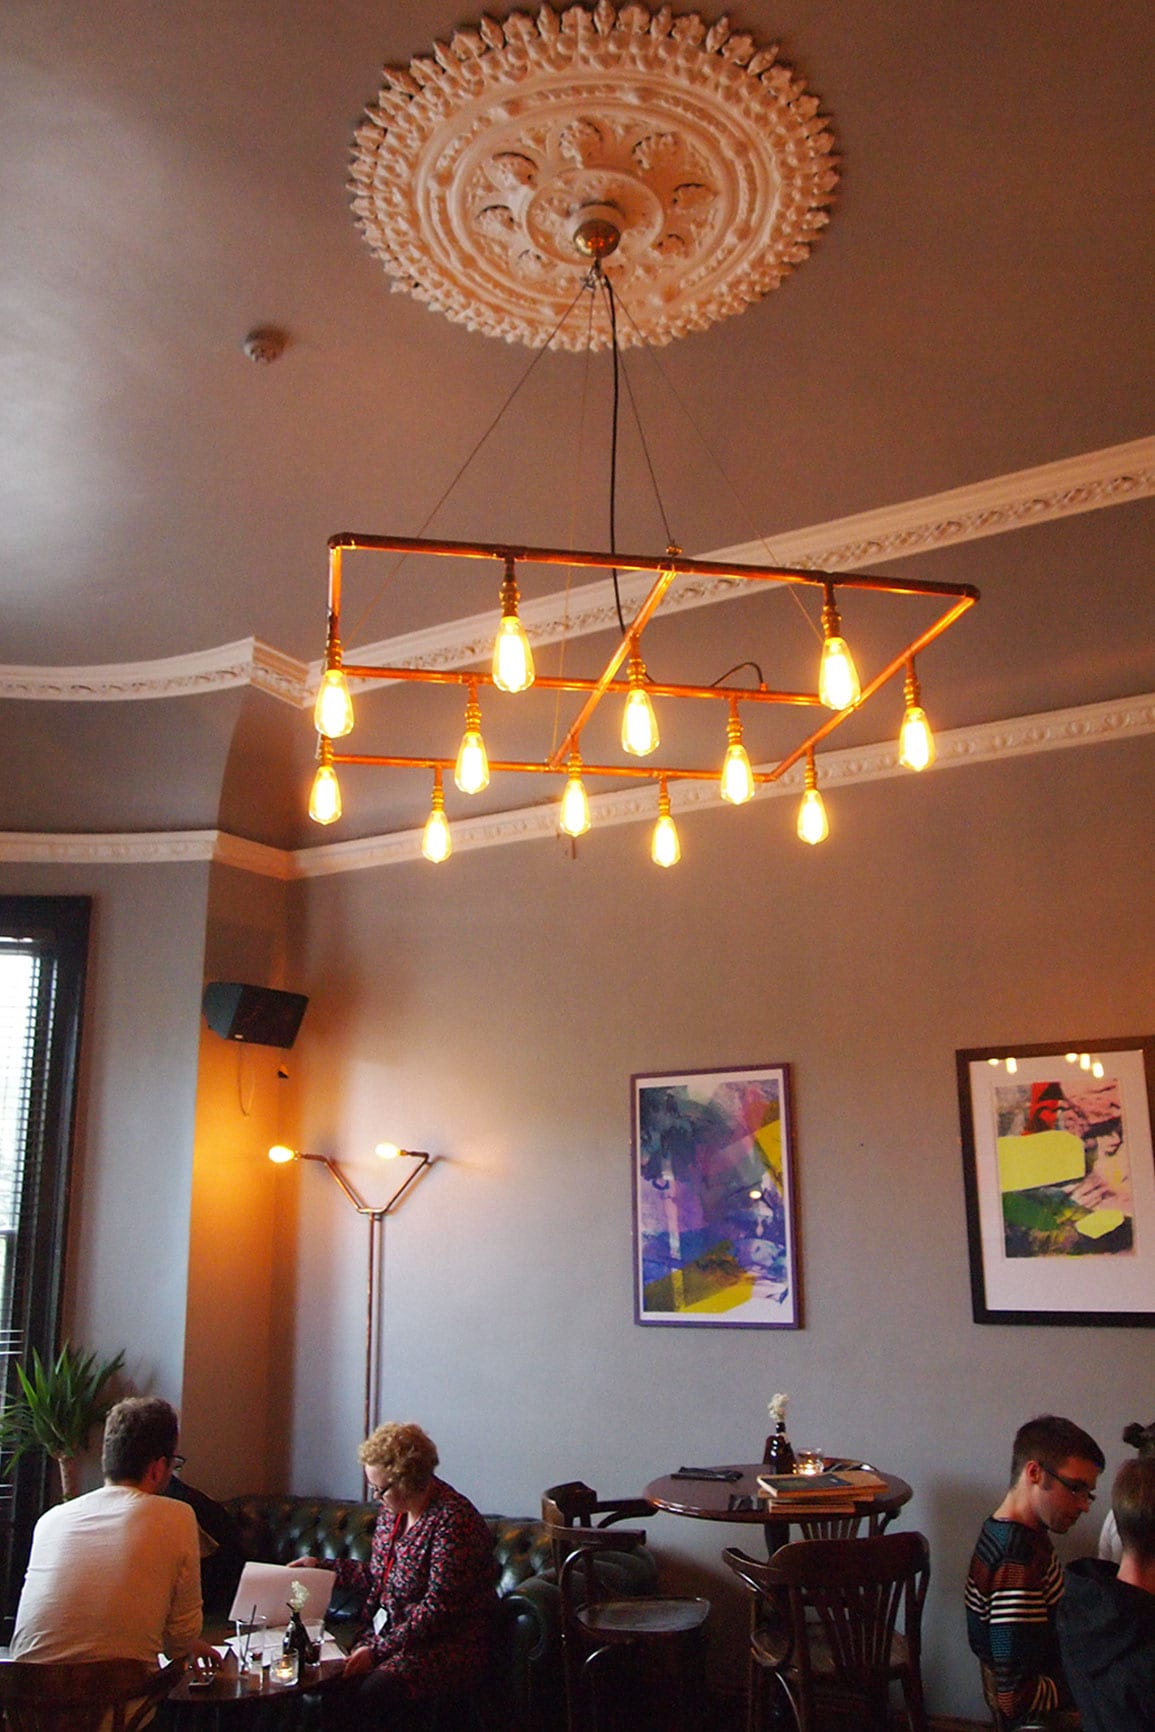 Faversham Grey Room Interior Copper Chandelier